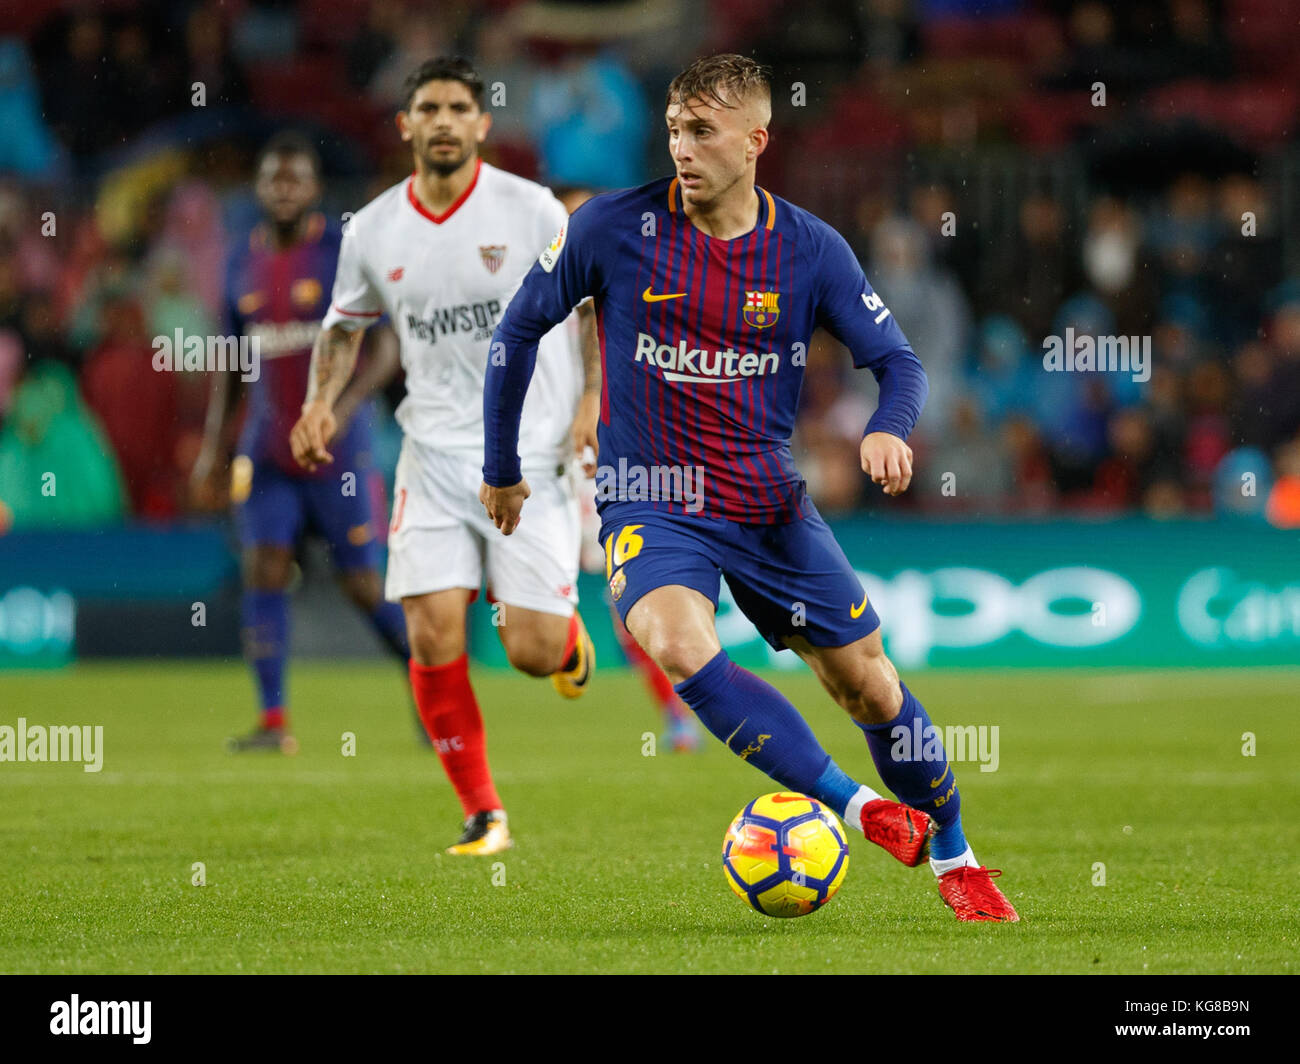 Barcelona, Spain. 4th November, 2017. Match between FC Barcelona and Sevilla FC in Camp Nou stadium. Deulofeu with - Stock Image